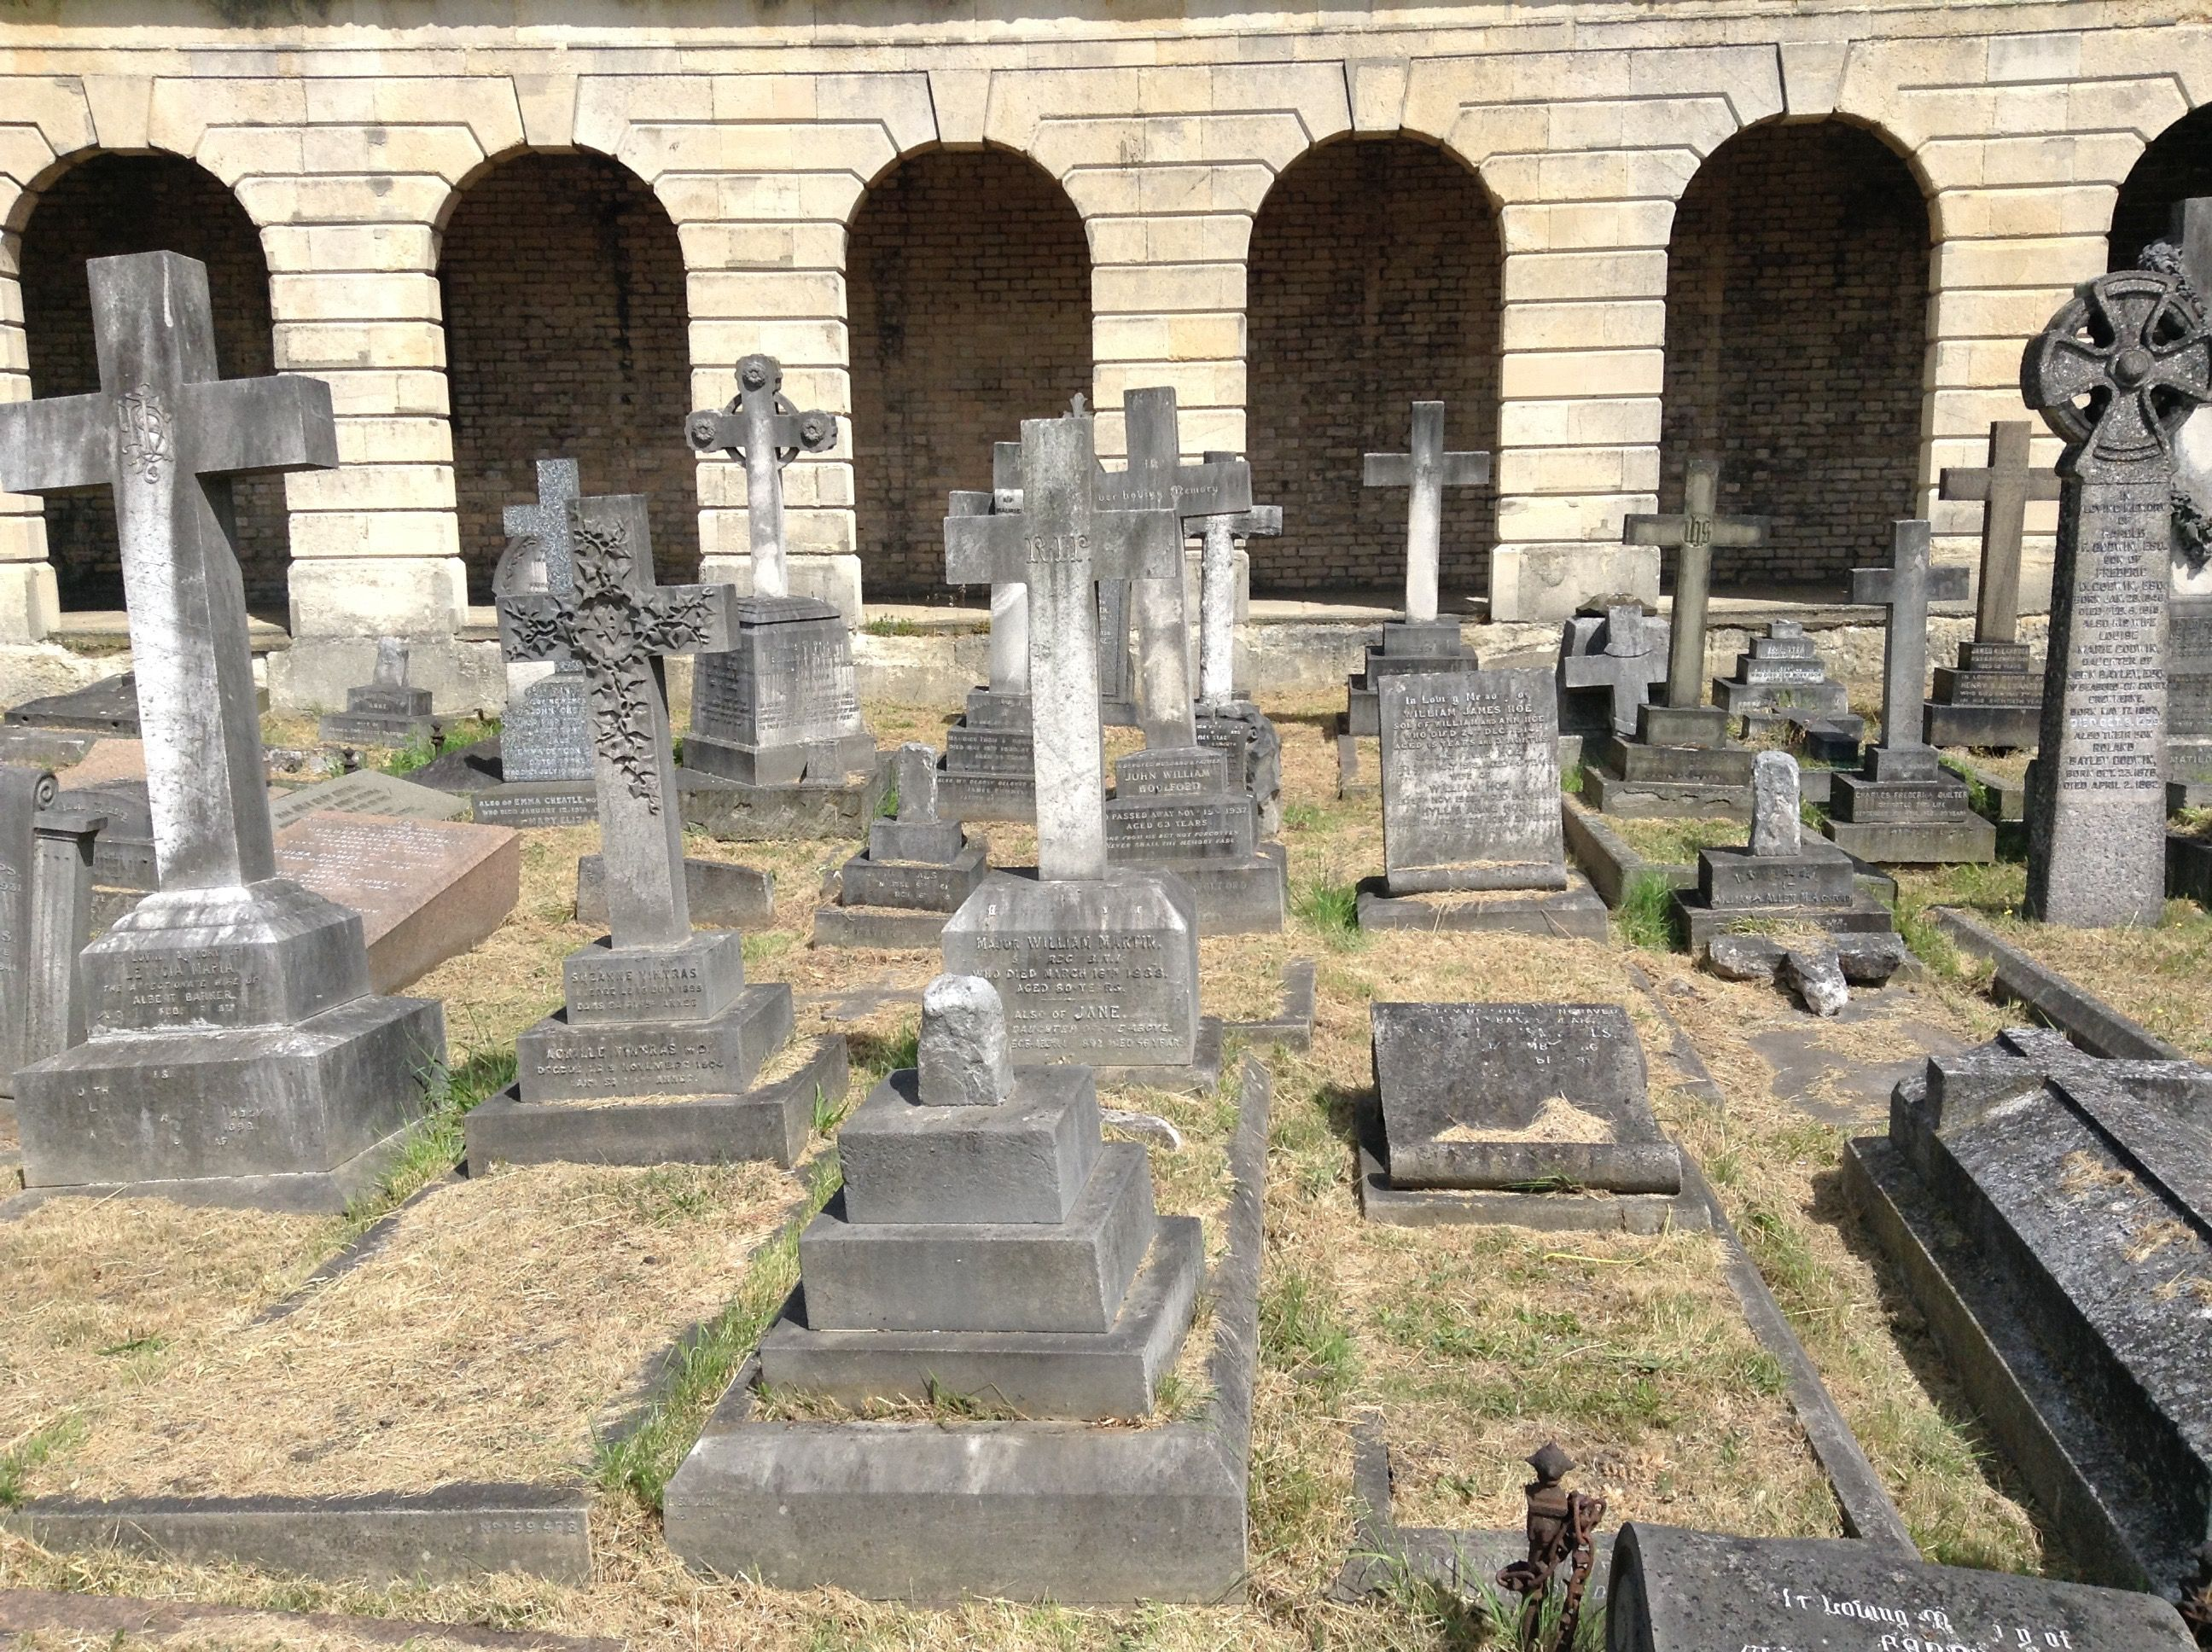 View of the numerous tombs in the circle of Brompton Cemetery, London, England, with the colonnades in the background.  Below the colonnades are catacombs which were originally conceived as a cheaper alternative burial to having a plot in the grounds of the cemetery. Unfortunately, the catacombs were not a success and only about 500 of the many thousands of places in them were sold.